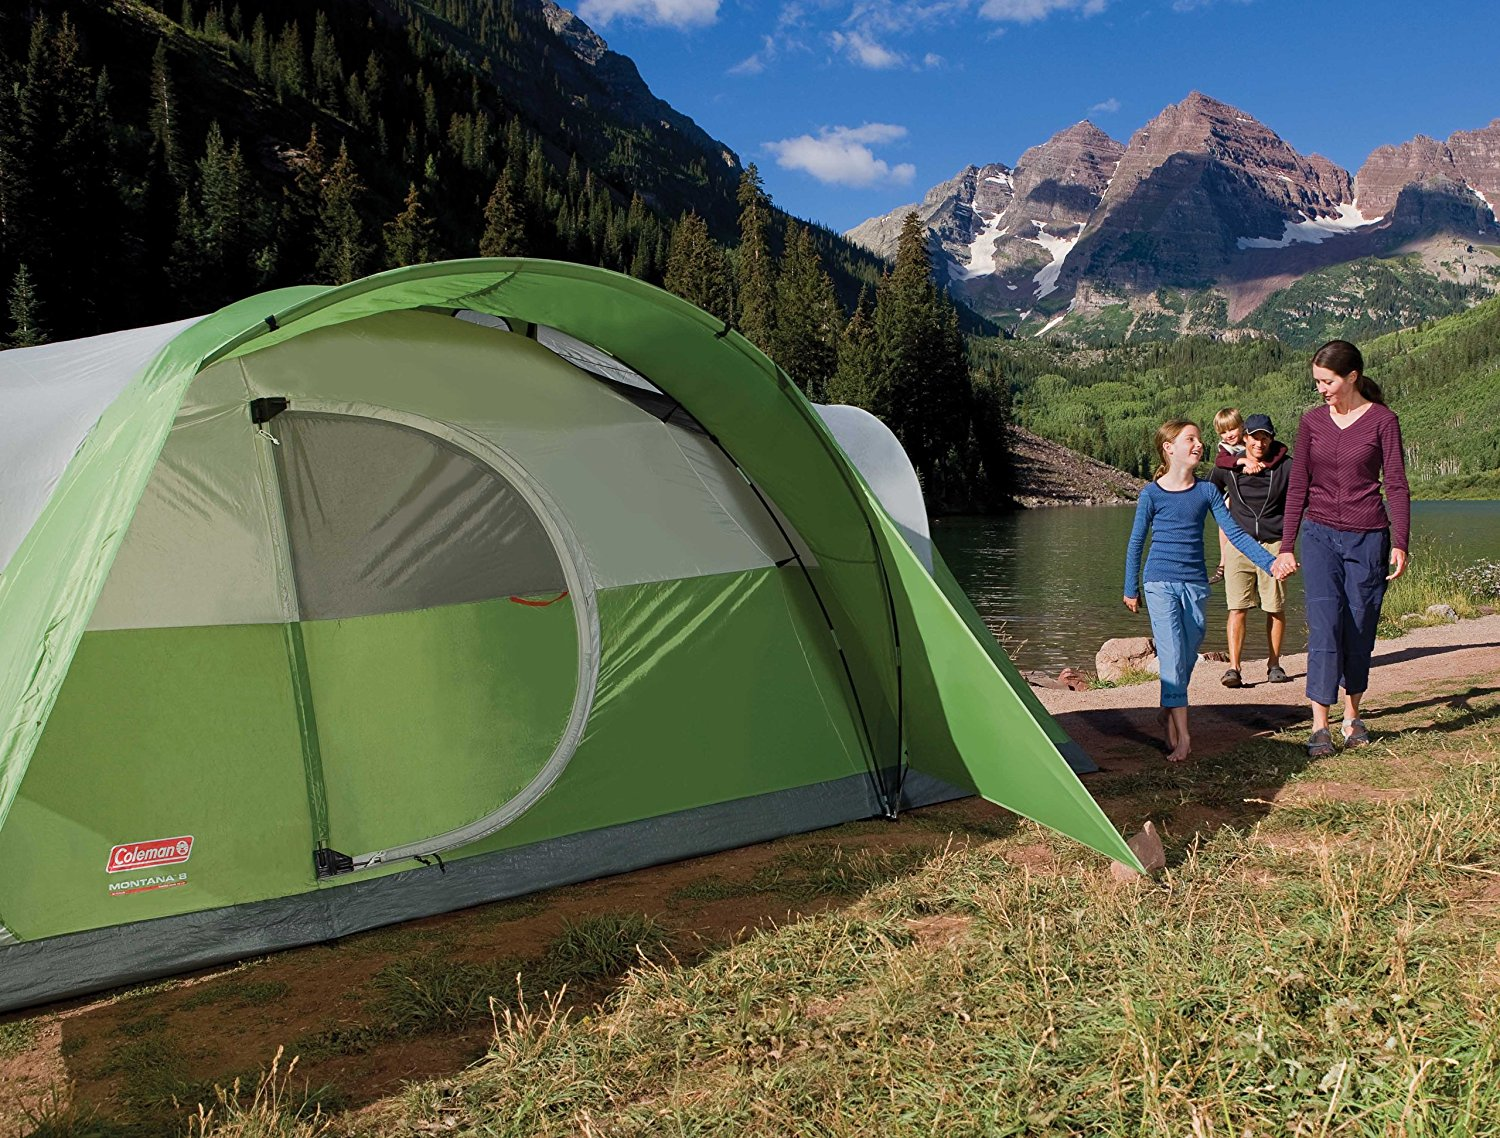 & Best 8 Person Tent For Group or Family Camping: 8 Person Tent Reviews